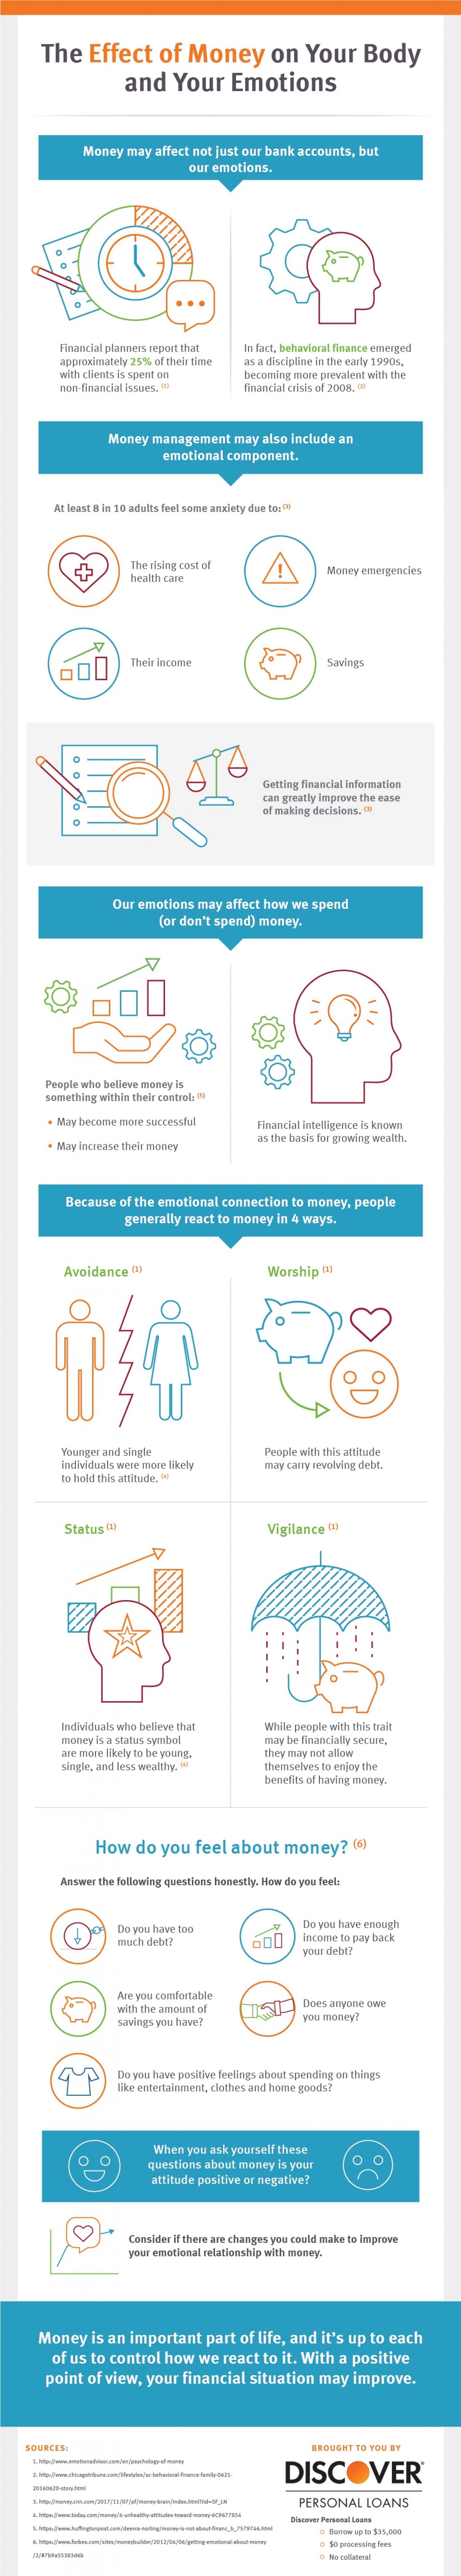 The Effect of Money on Your Body and  Your Emotions Infographic